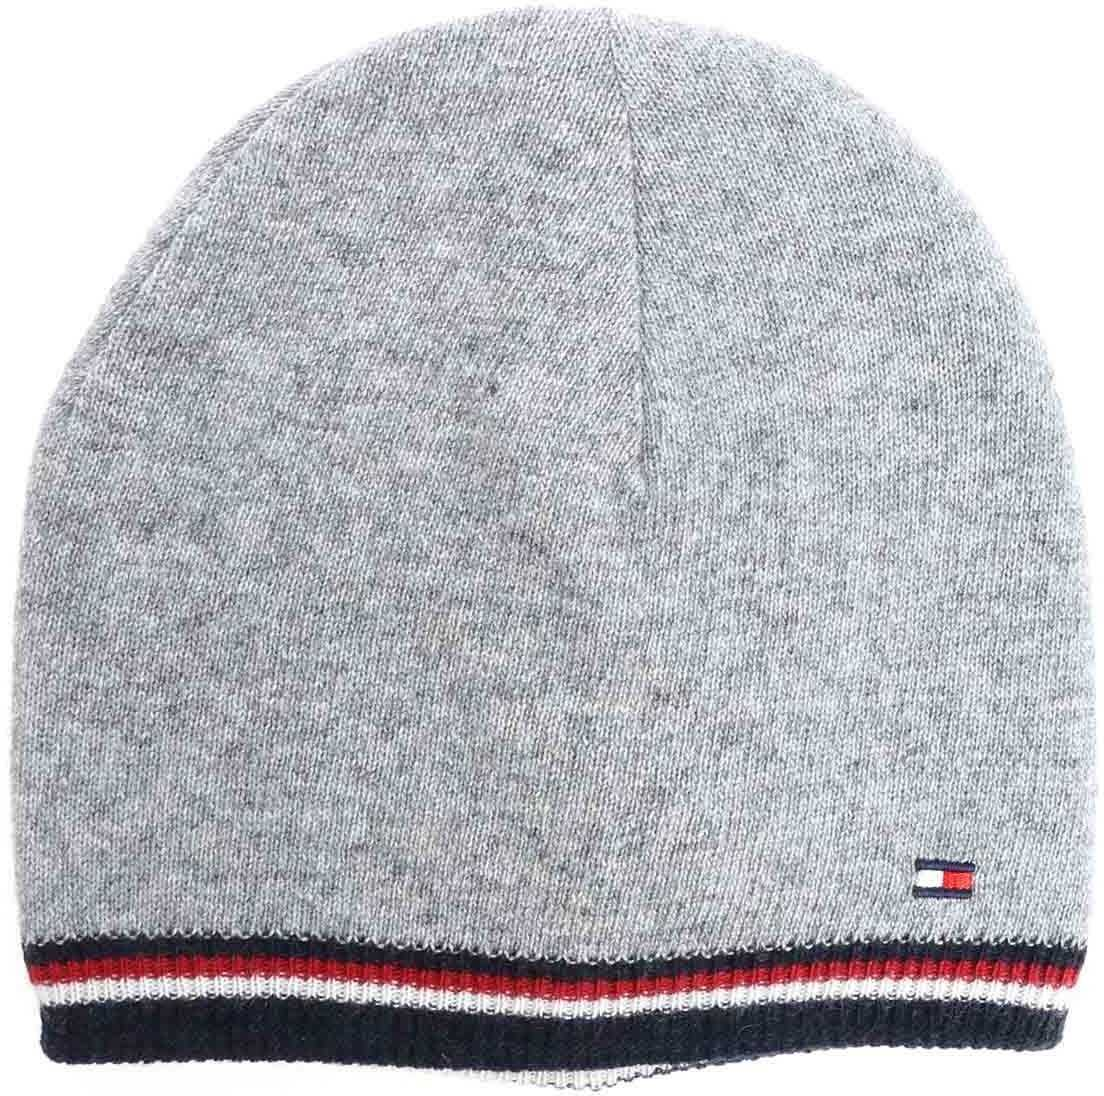 Tommy Hilfiger Reversible Gray Beanie Gray